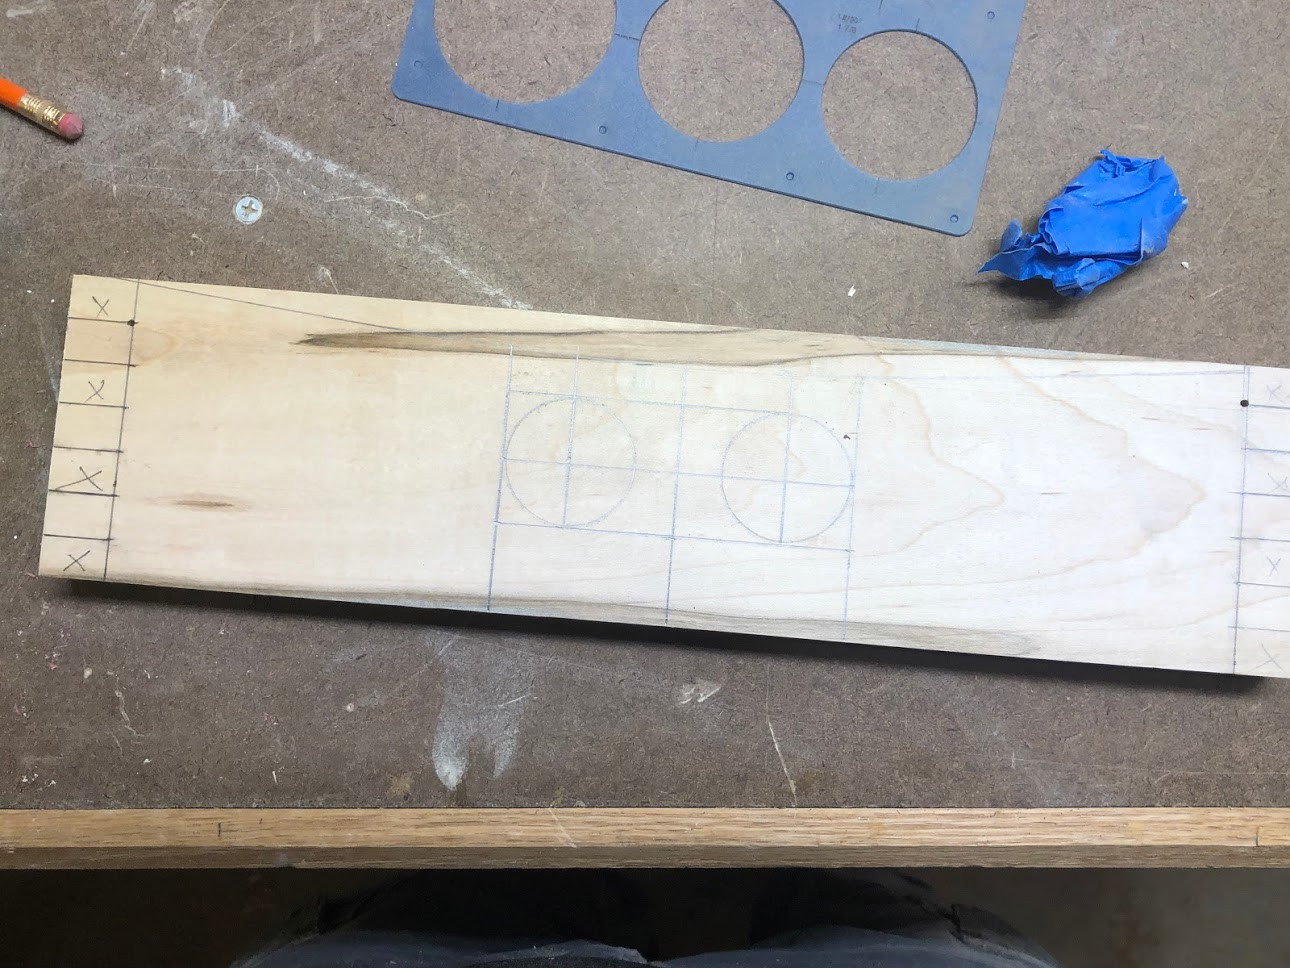 Here is the image of one of the sides with all the layout marks done for the handhold, which is basically 2 holes cut in the center of the board and then the rest of the material will be removed with a jigsaw.